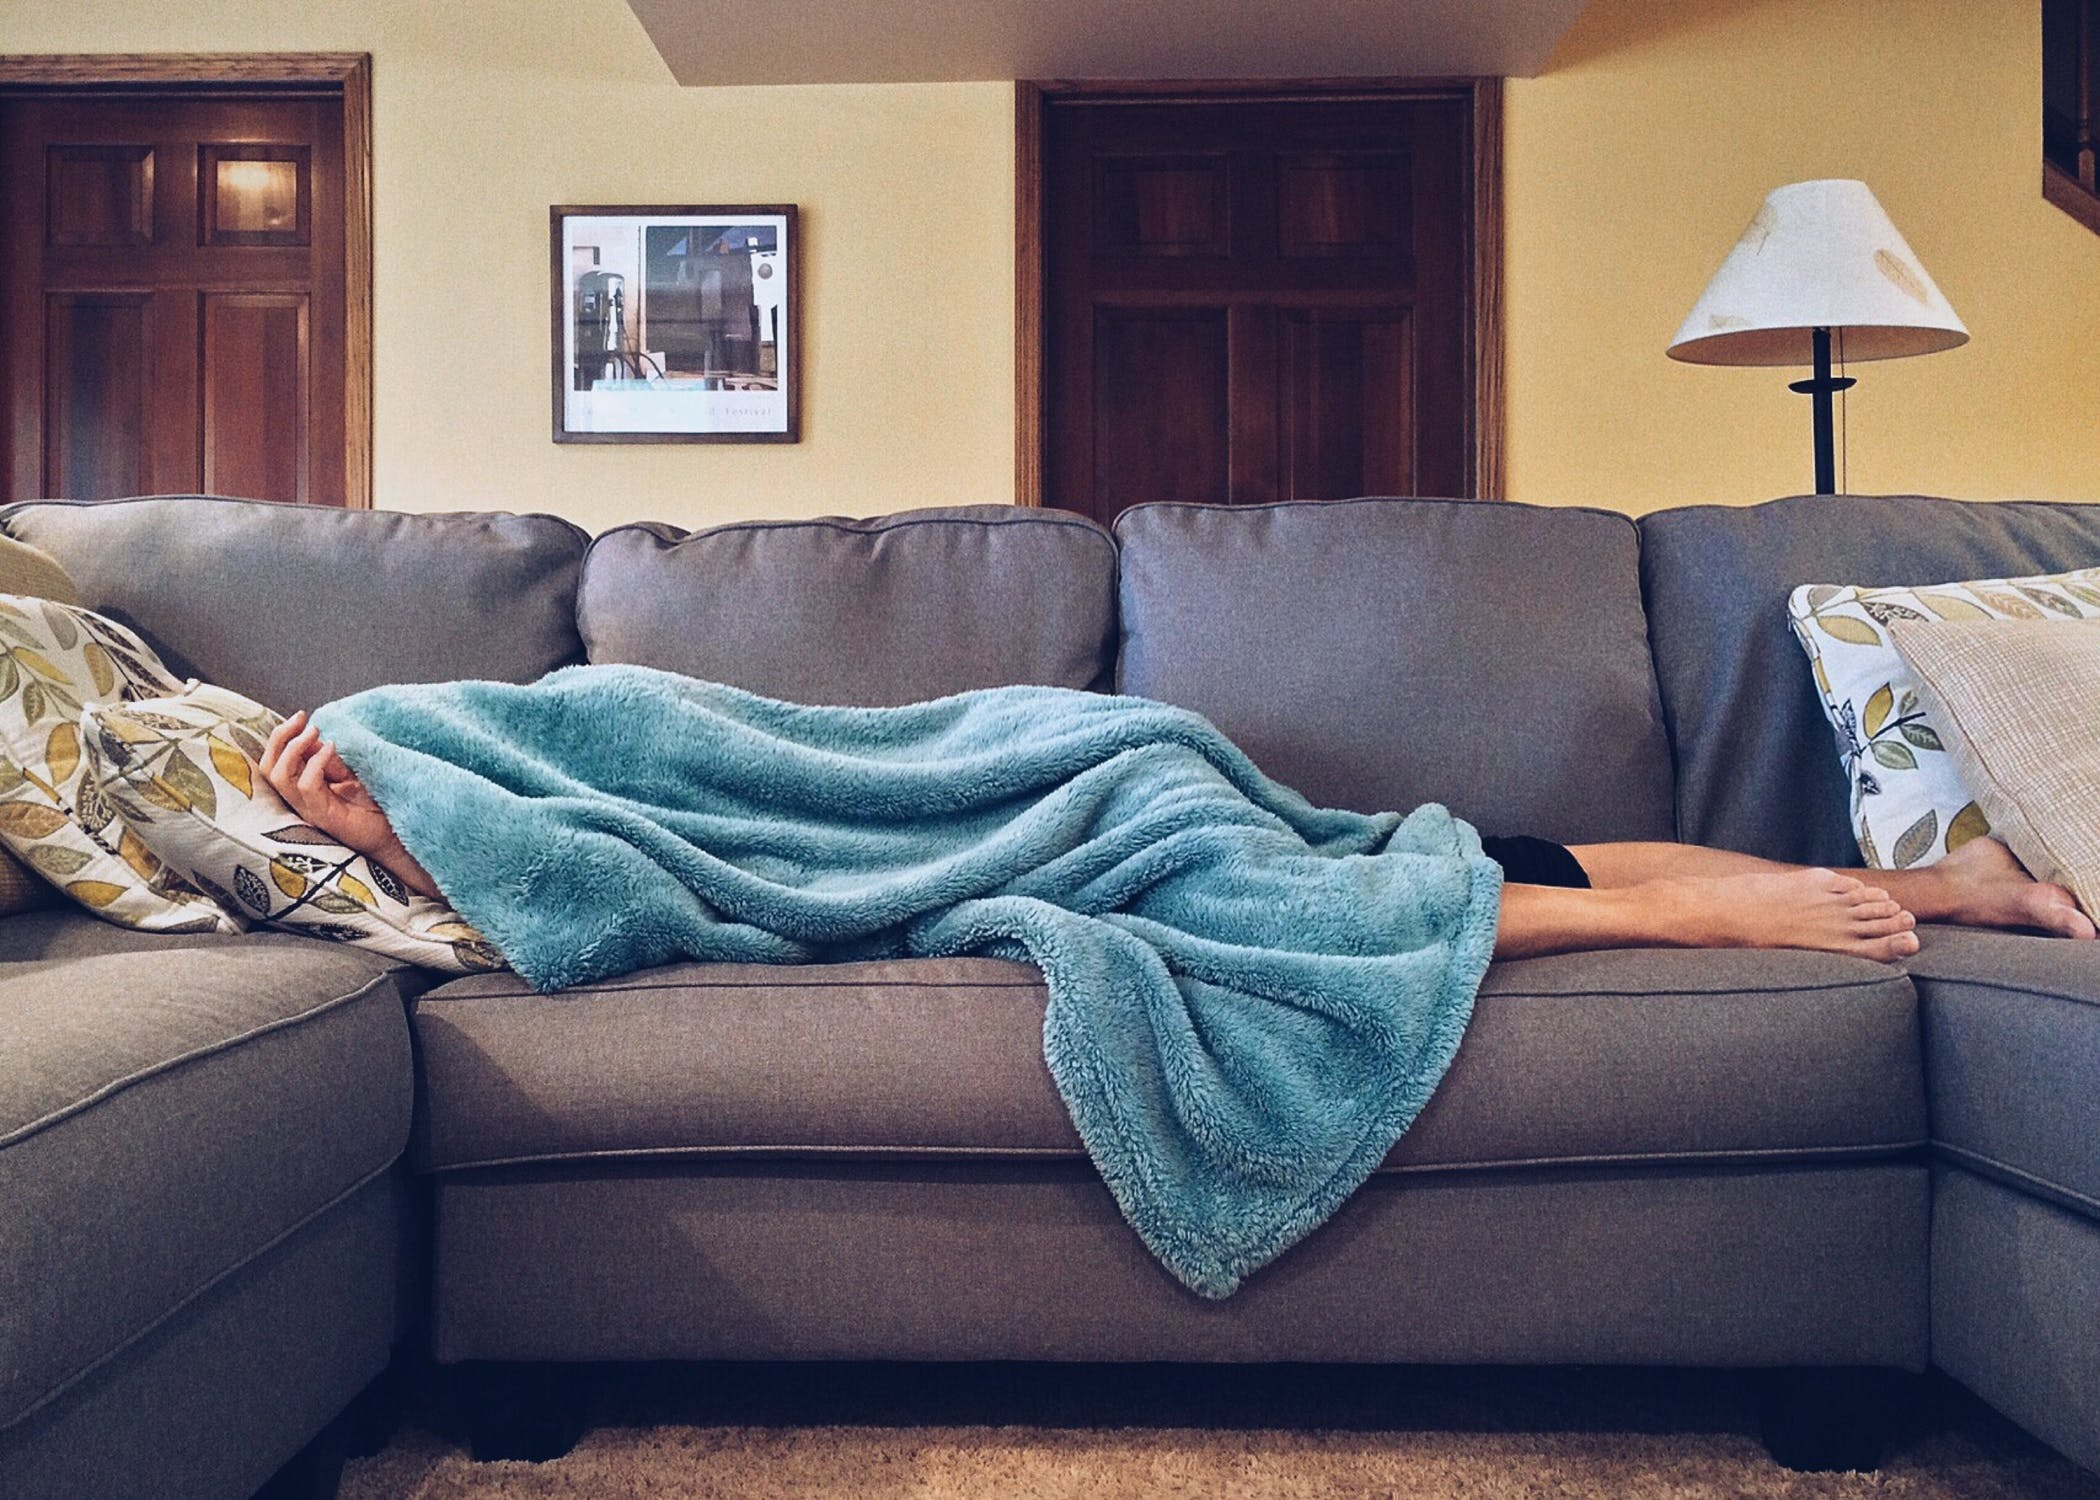 Guy sleeping on couch